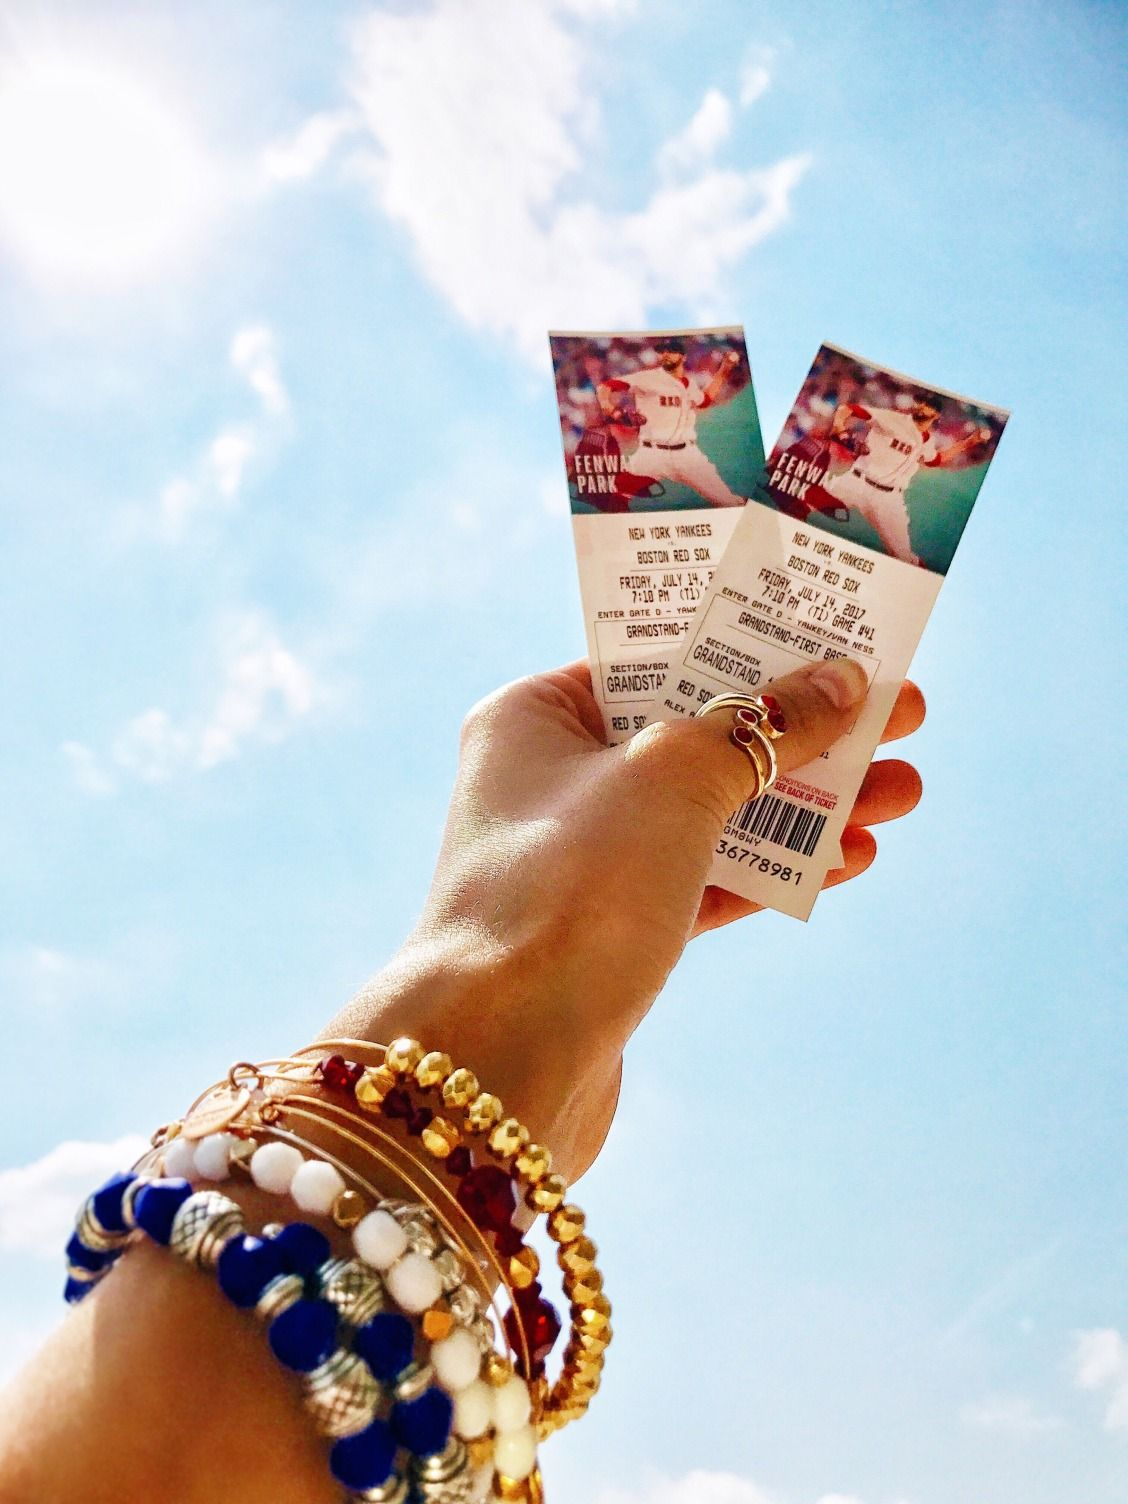 Check out our Twitter [UN: @alexandani] for a chance to win Boston Red Sox tickets!